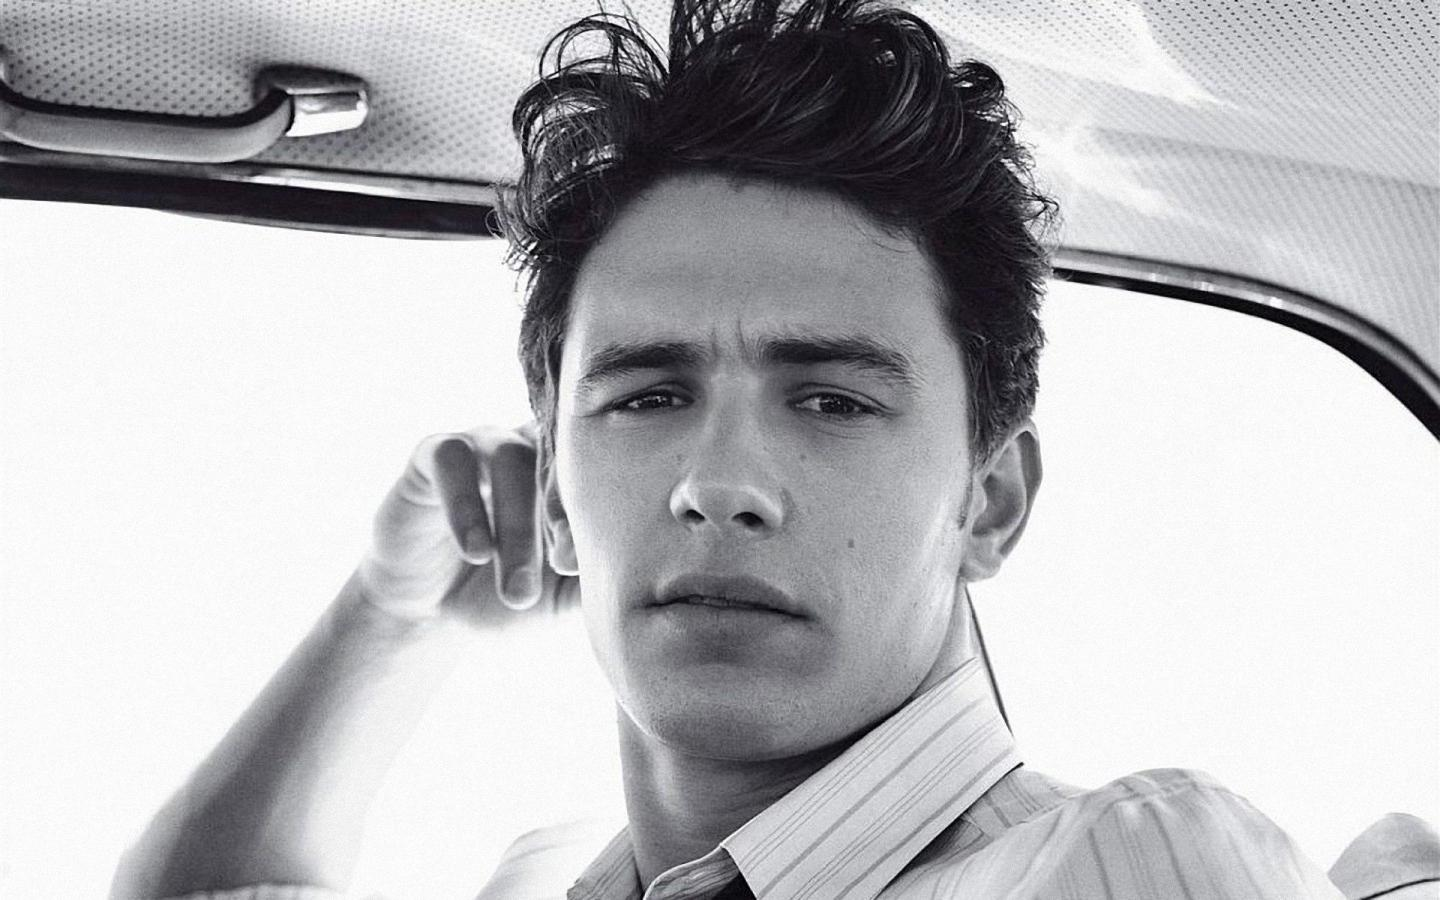 James Franco Wallpaper HD